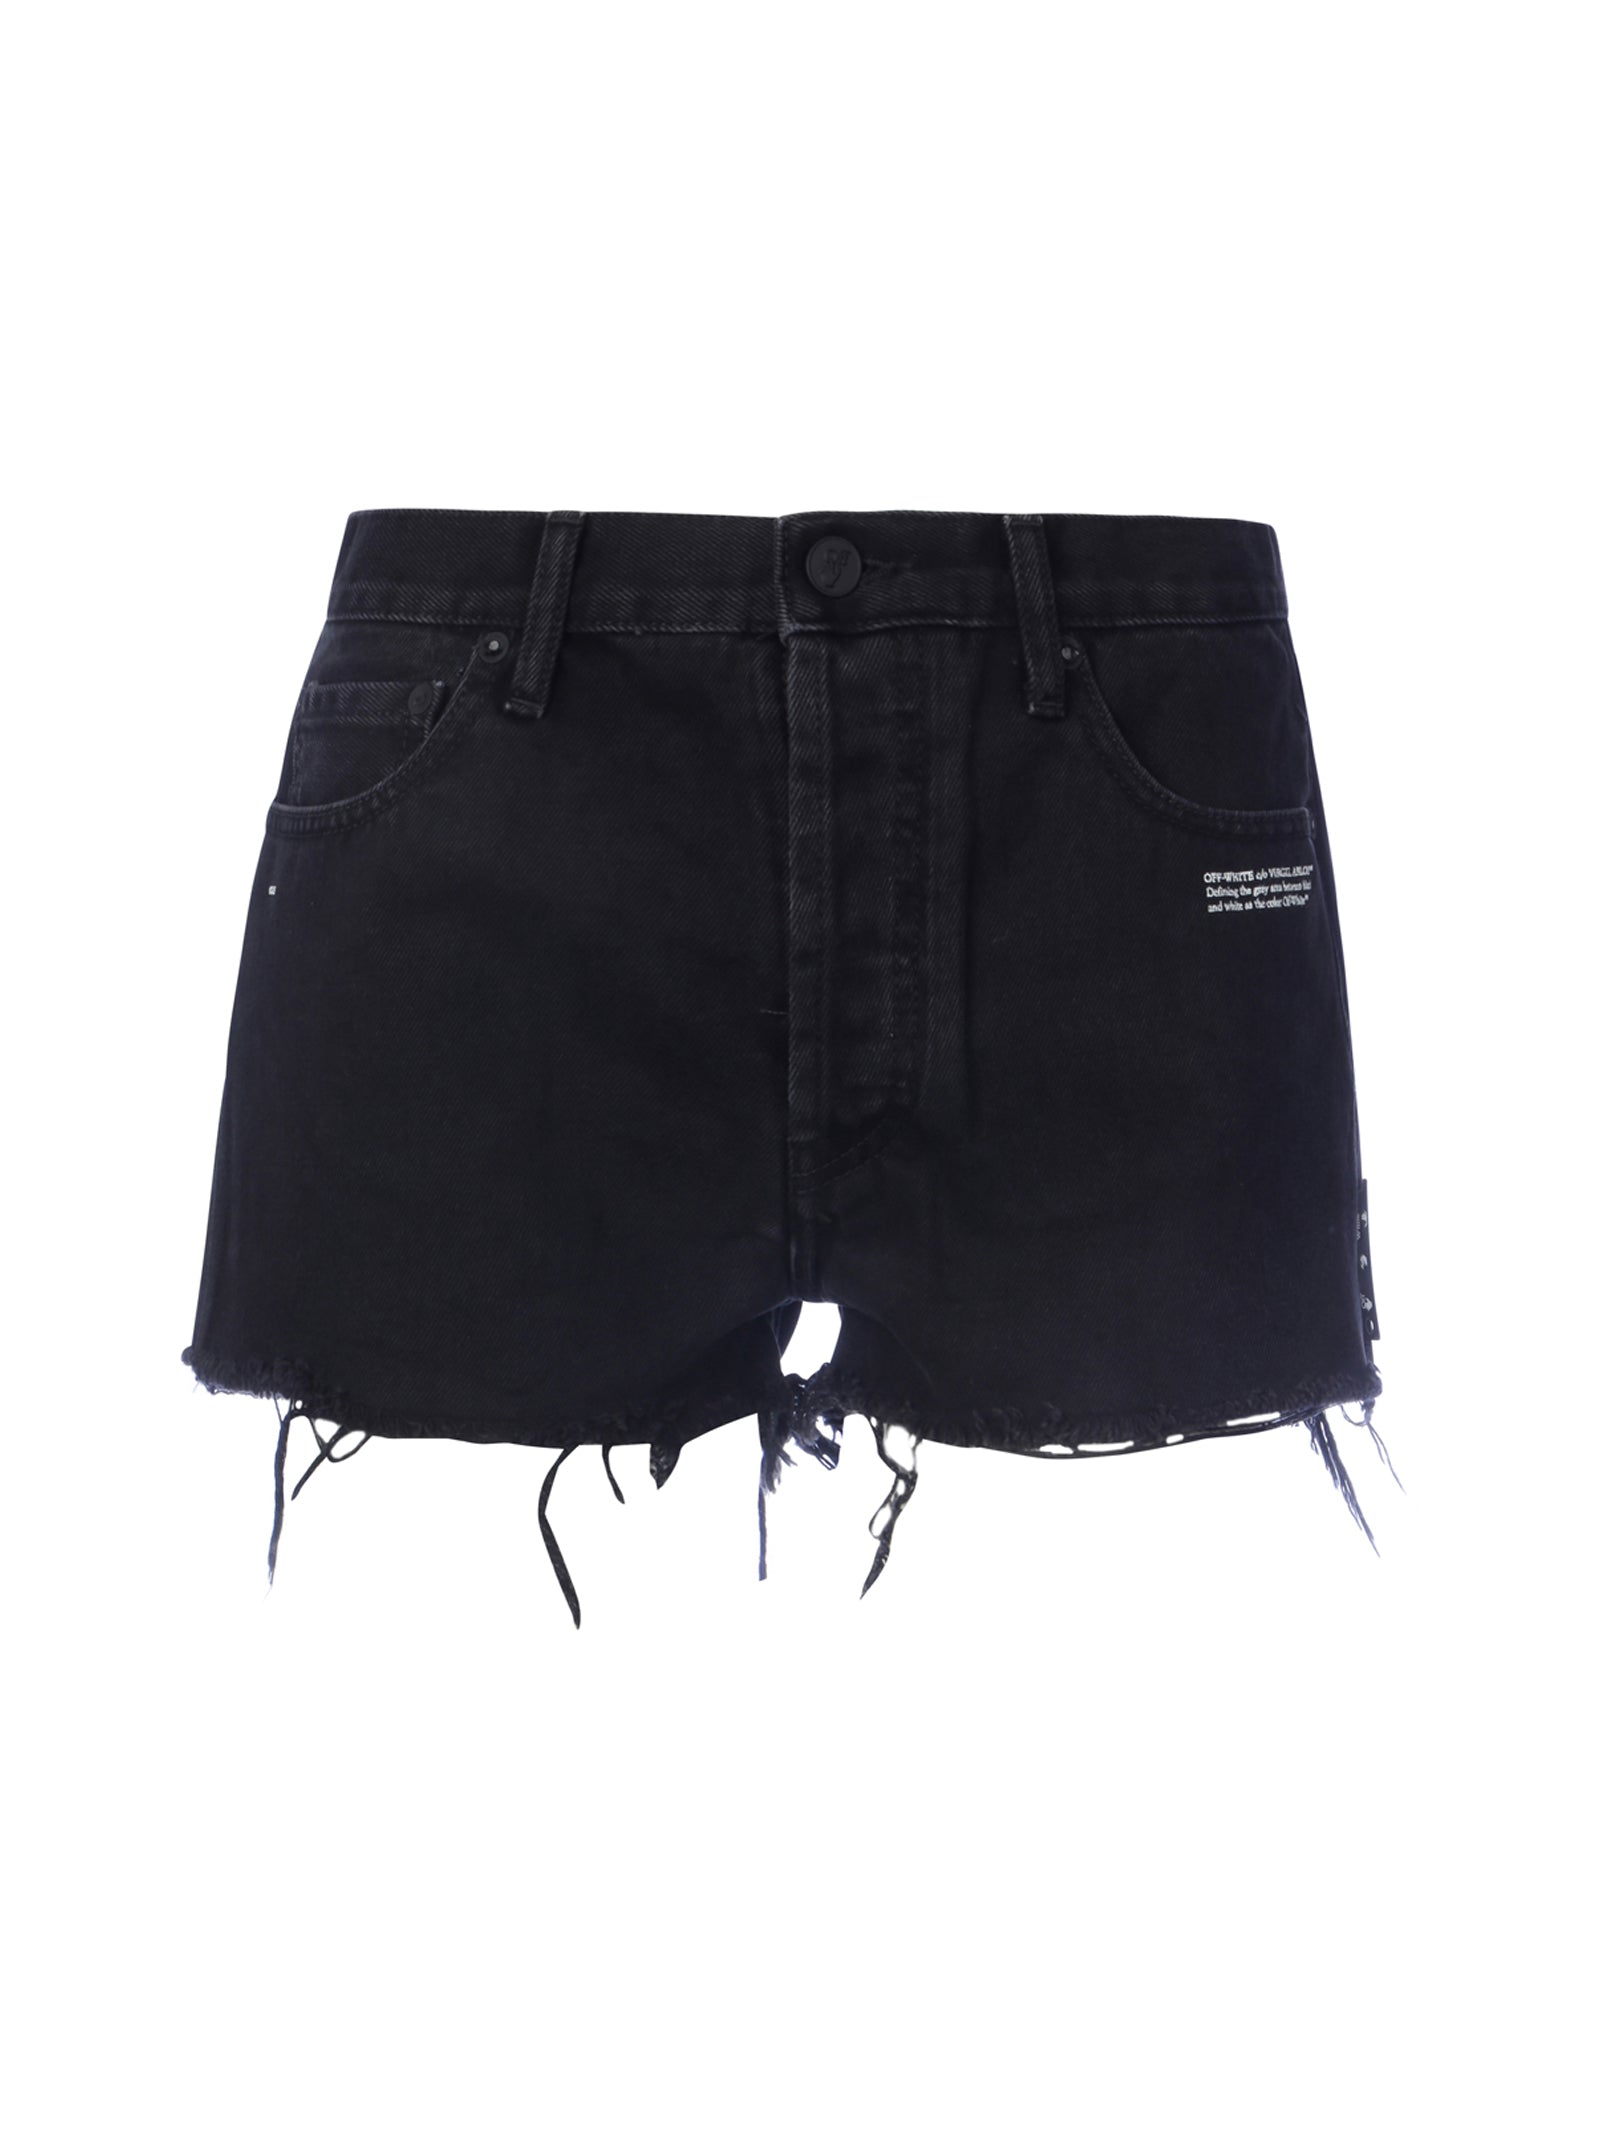 Shorts denim sfrangiati